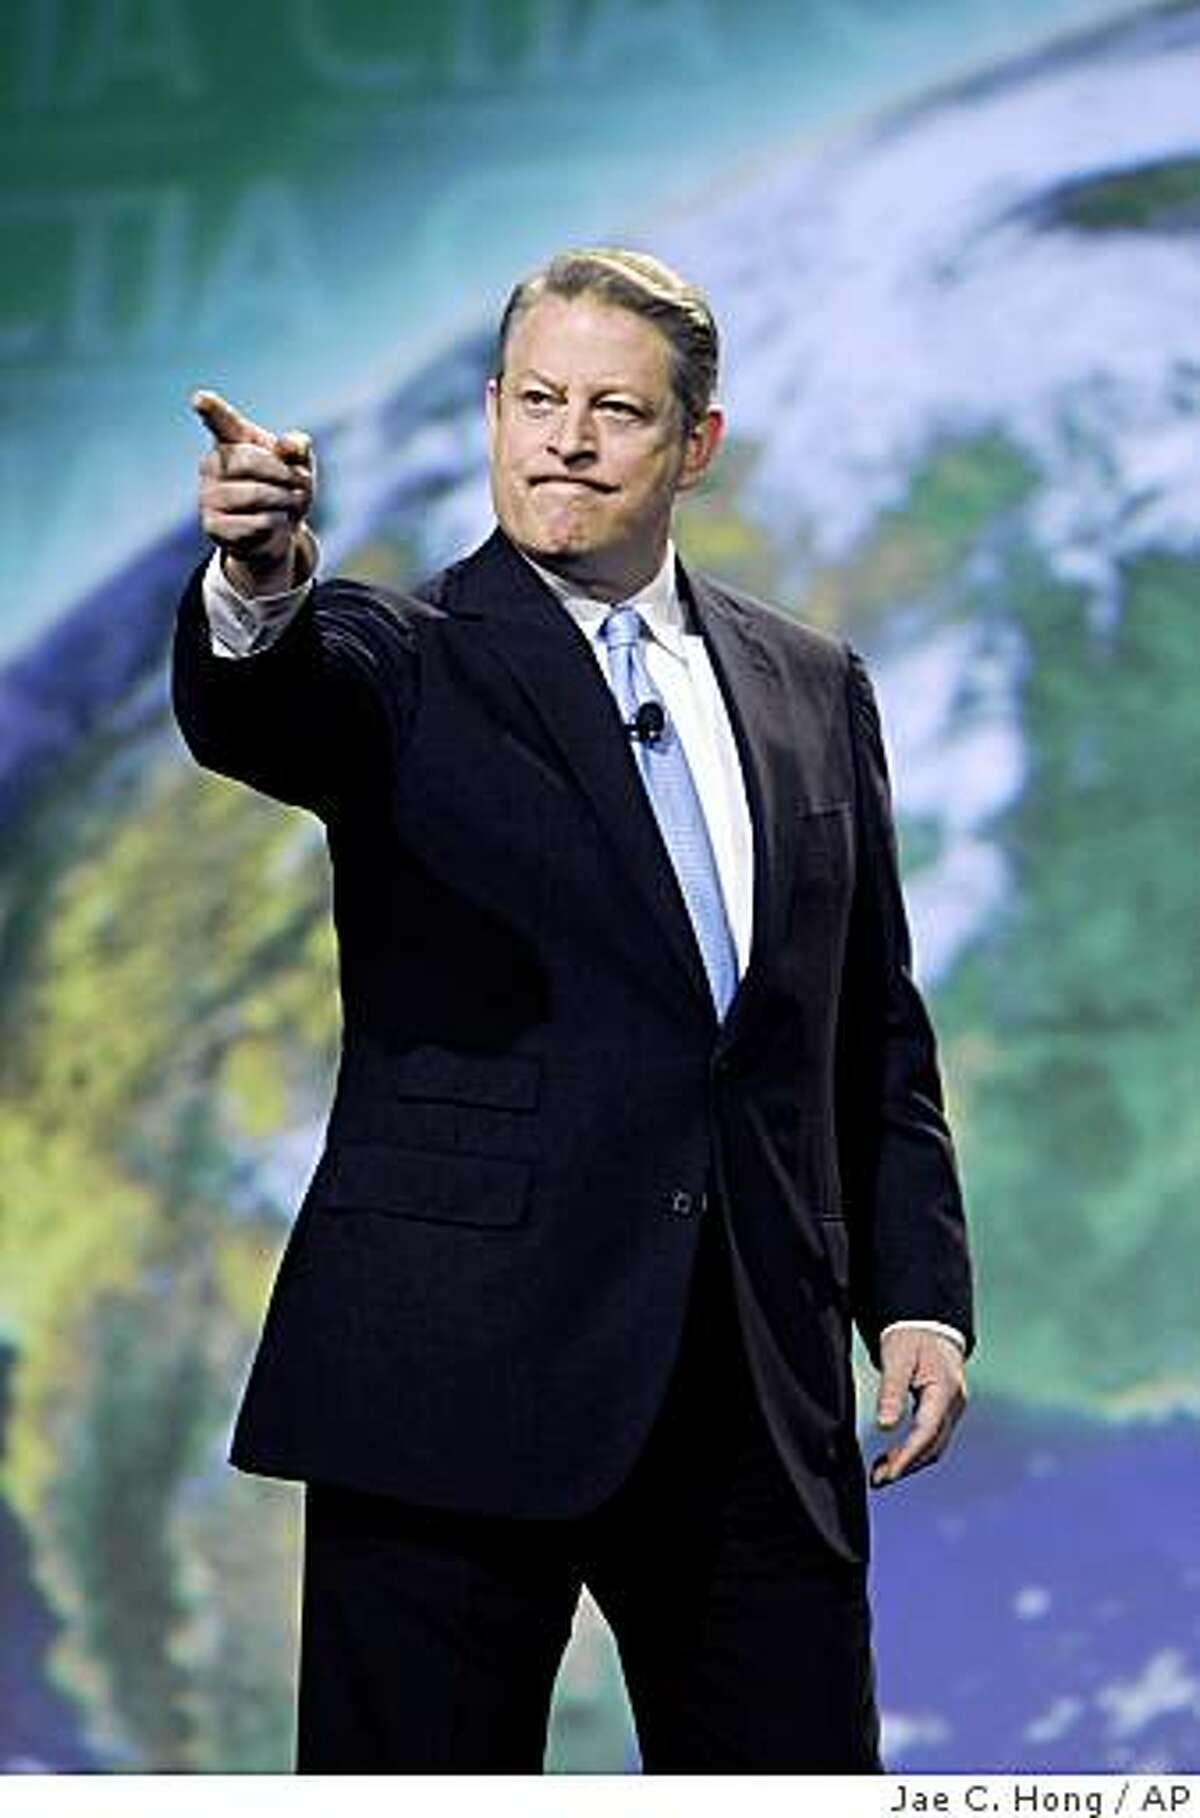 """Former Vice President Al Gore speaks at the International CTIA Wireless show in Las Vegas, Friday, April 3, 2009. Gore says government investment in green infrastructure projects, including creation of a """"smart,"""" energy efficient electricity grid, will create jobs and help address the threat of climate change. (AP Photo/Jae C. Hong)"""